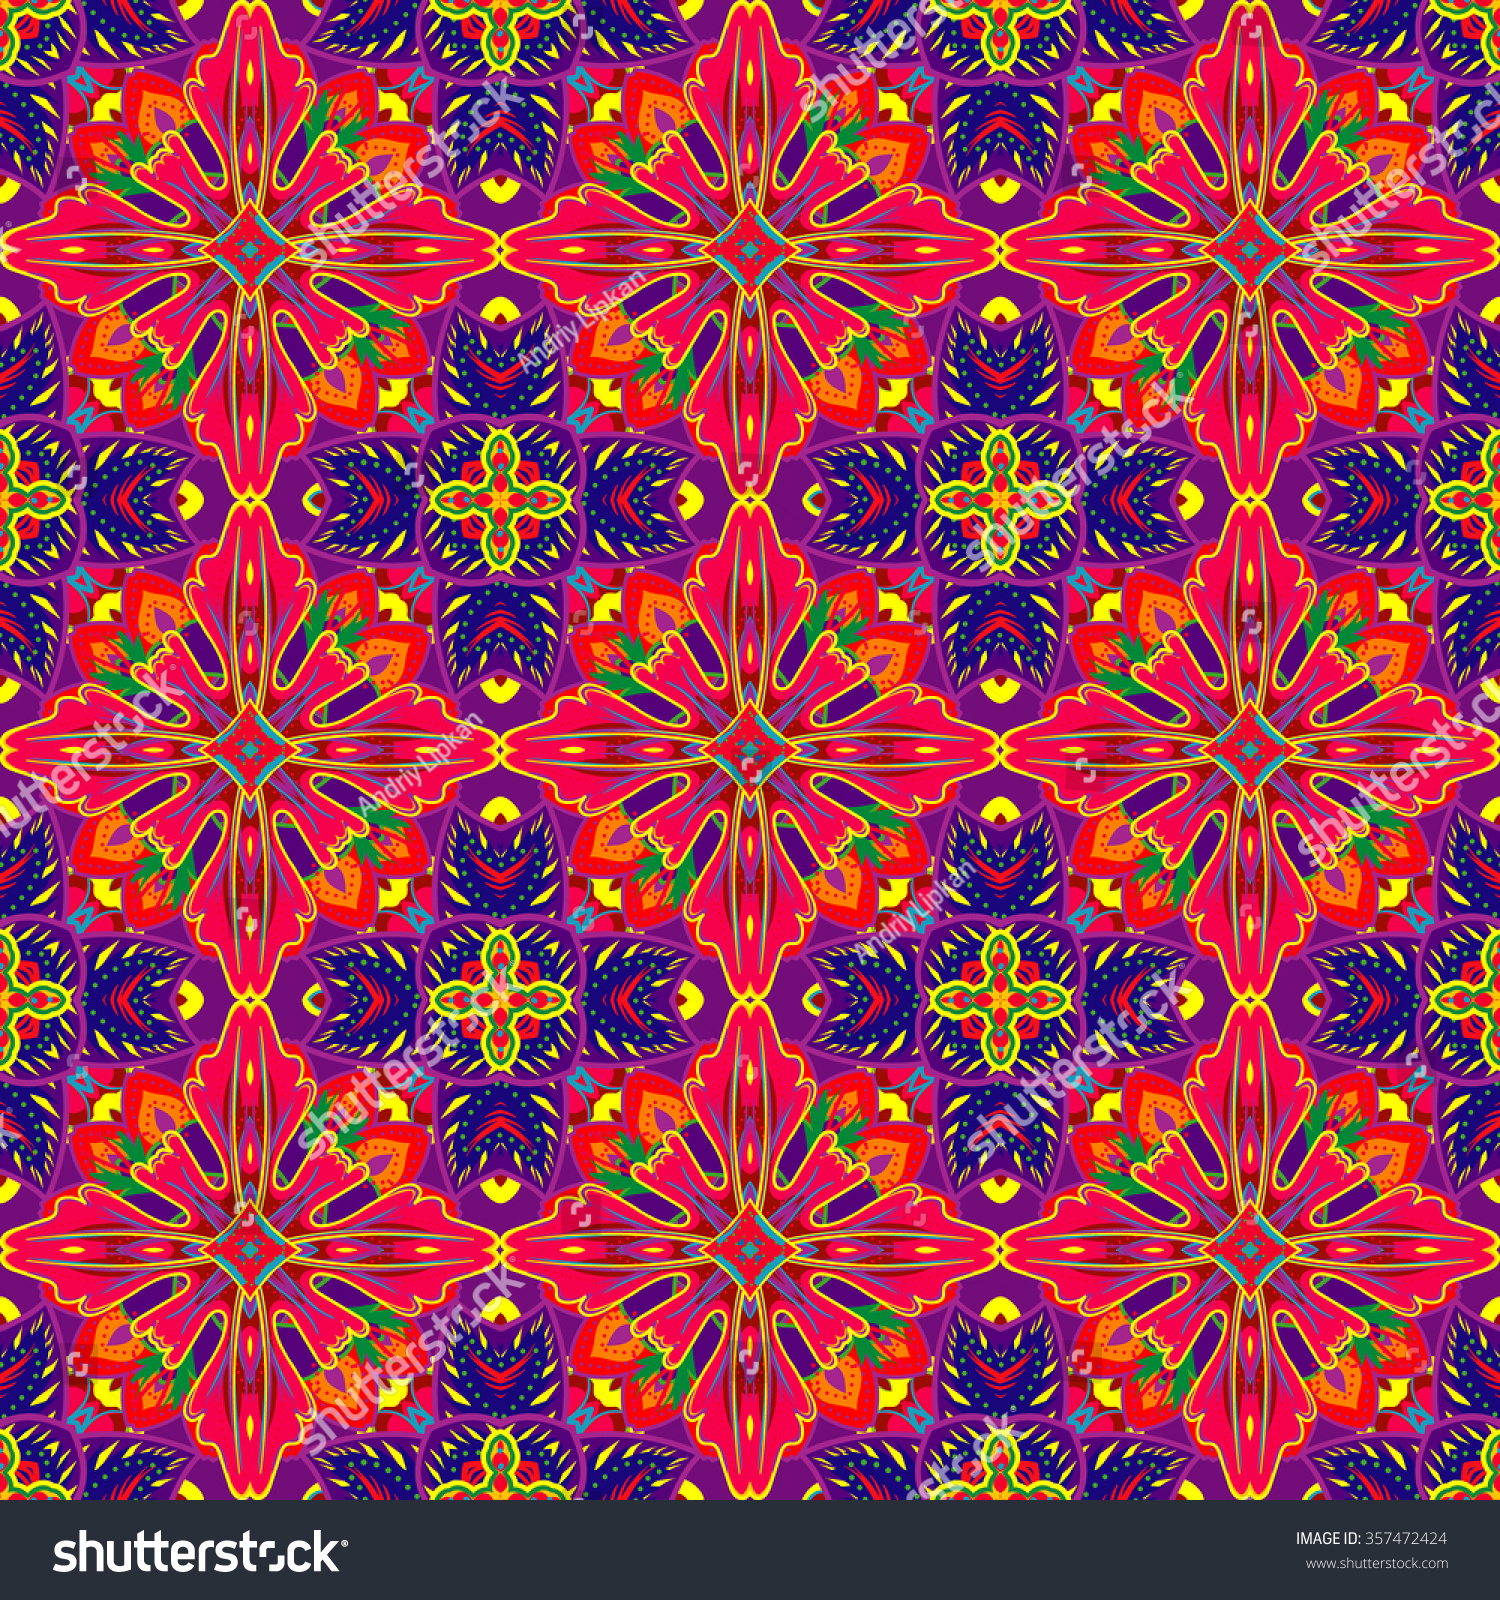 Moroccan geometric pattern royalty free stock photos image 13547078 - Geometric Moroccan Patterns Stylized Flowers And Leaves Stock Photo 1500x1600